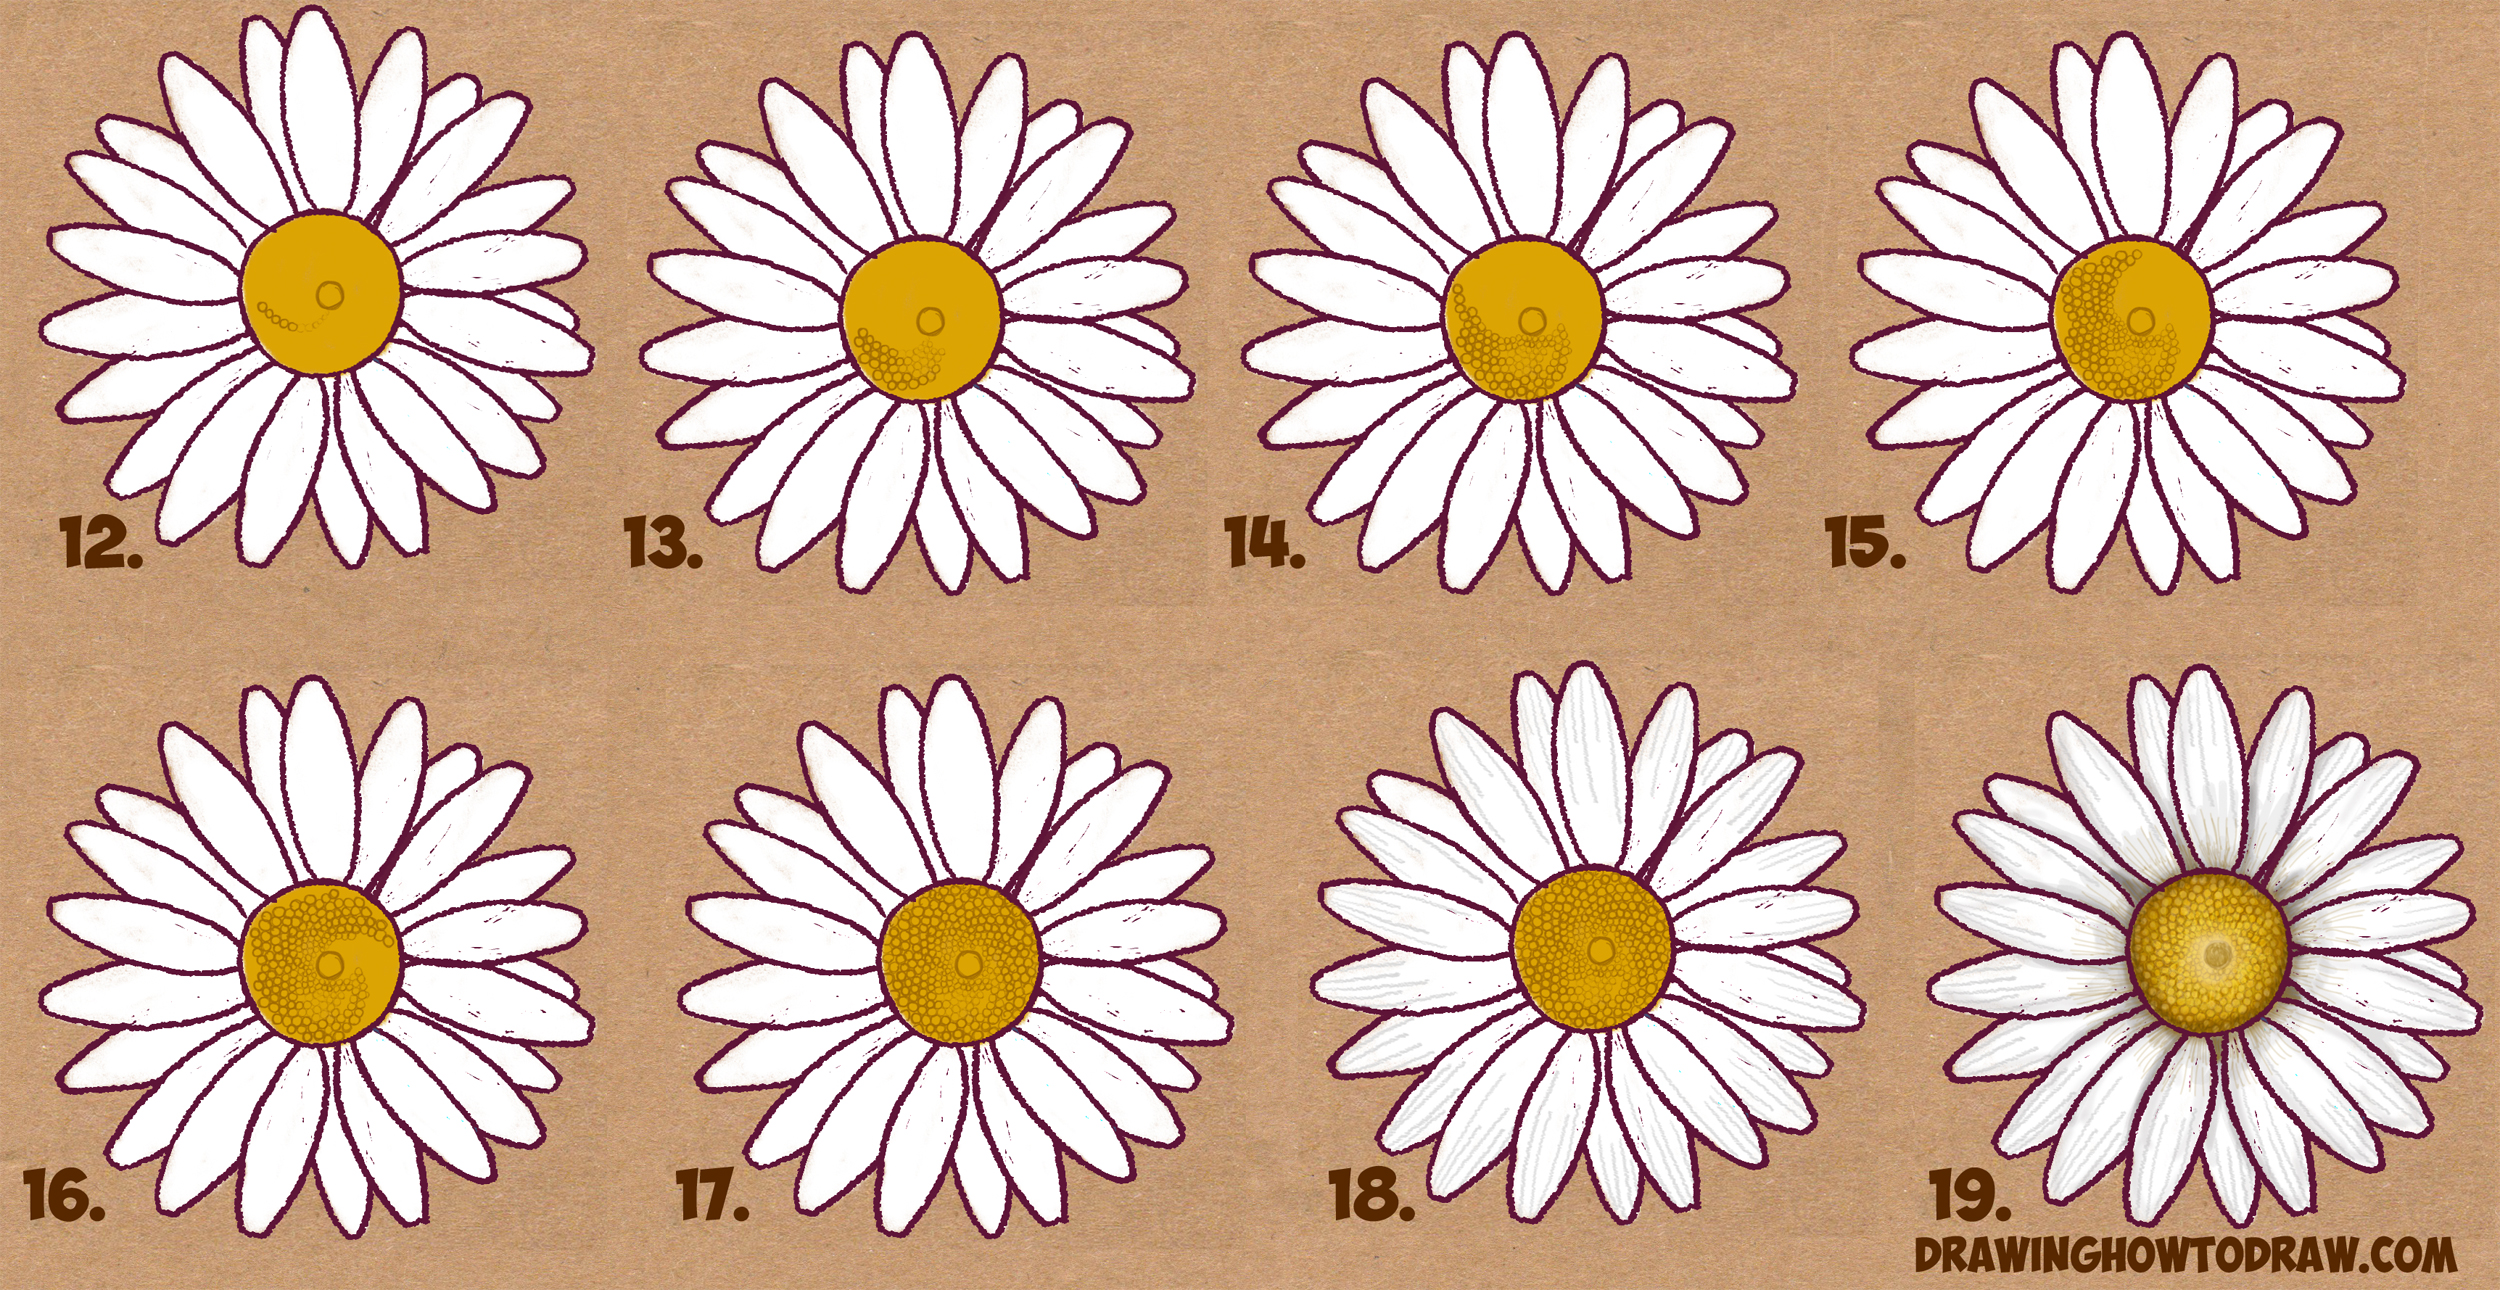 How to draw a daisy flower daisies in easy step by step drawing learn how to draw a daisy flower daisies in simple steps drawing lesson dhlflorist Choice Image